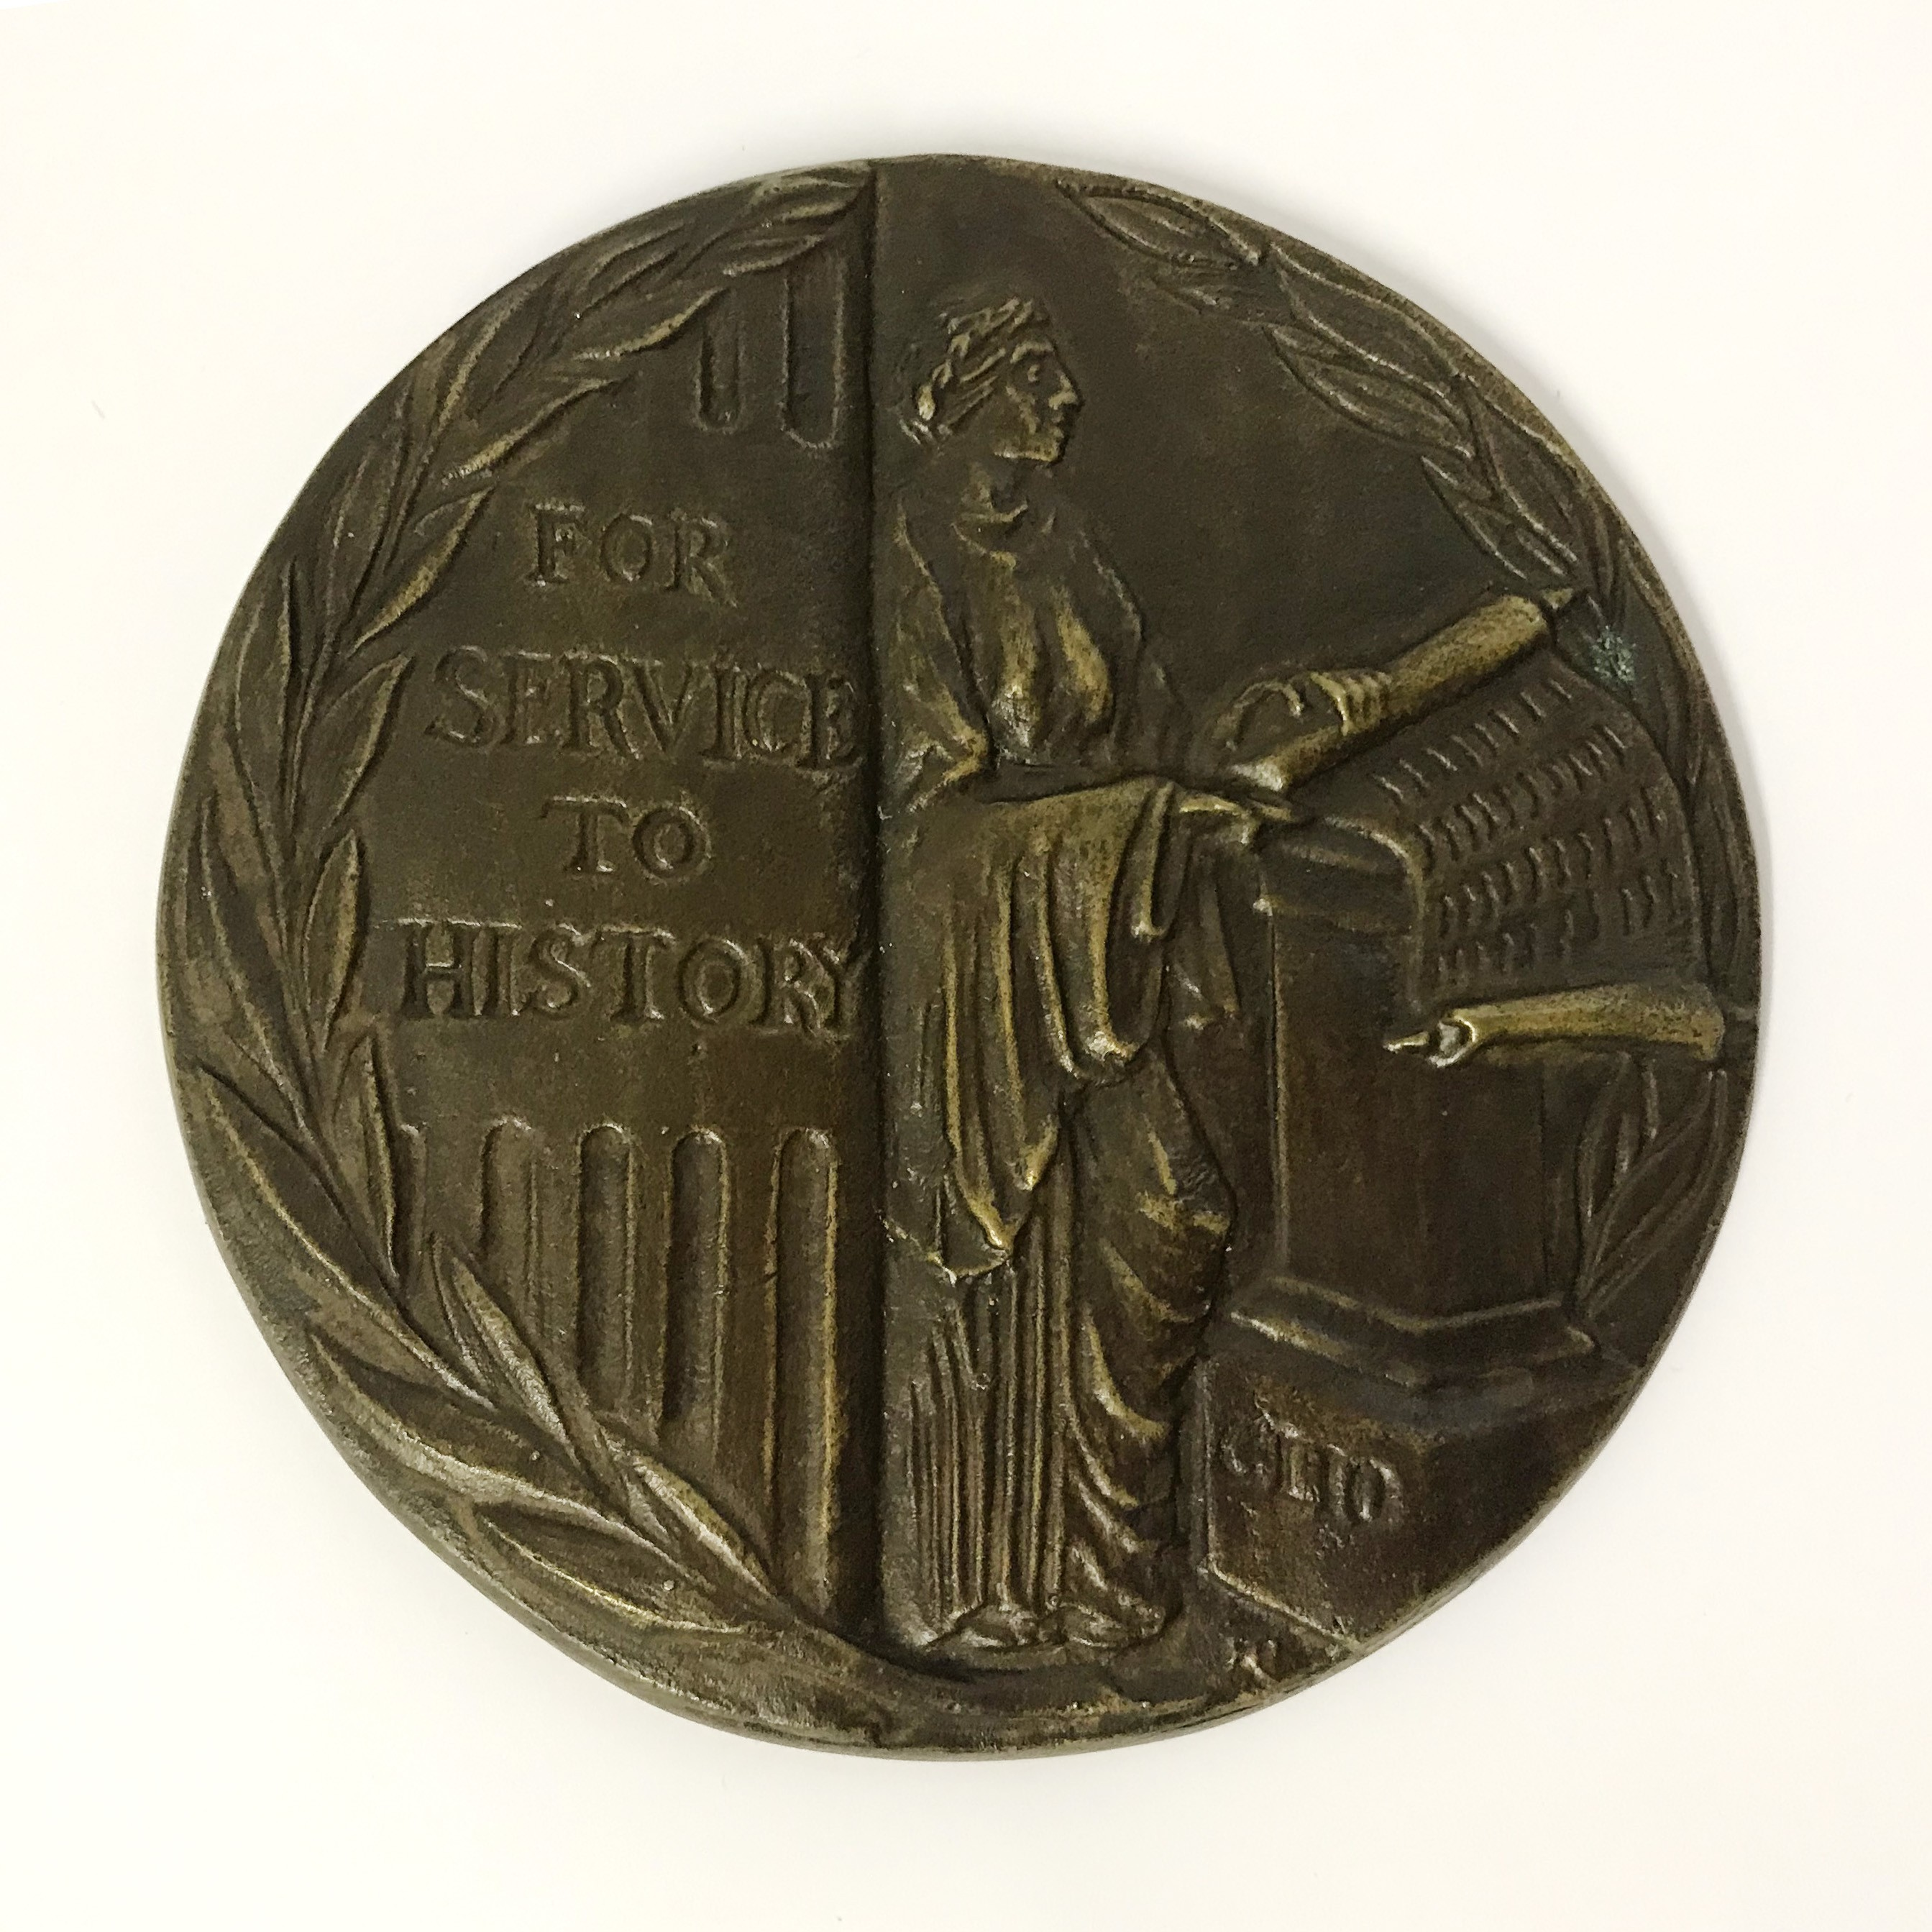 Lot 46A - THE NORTON MEDLICOTT BRONZE MEDAL FOR SERVICE TO HISTORY TO PROF RAGNHILD HATTON